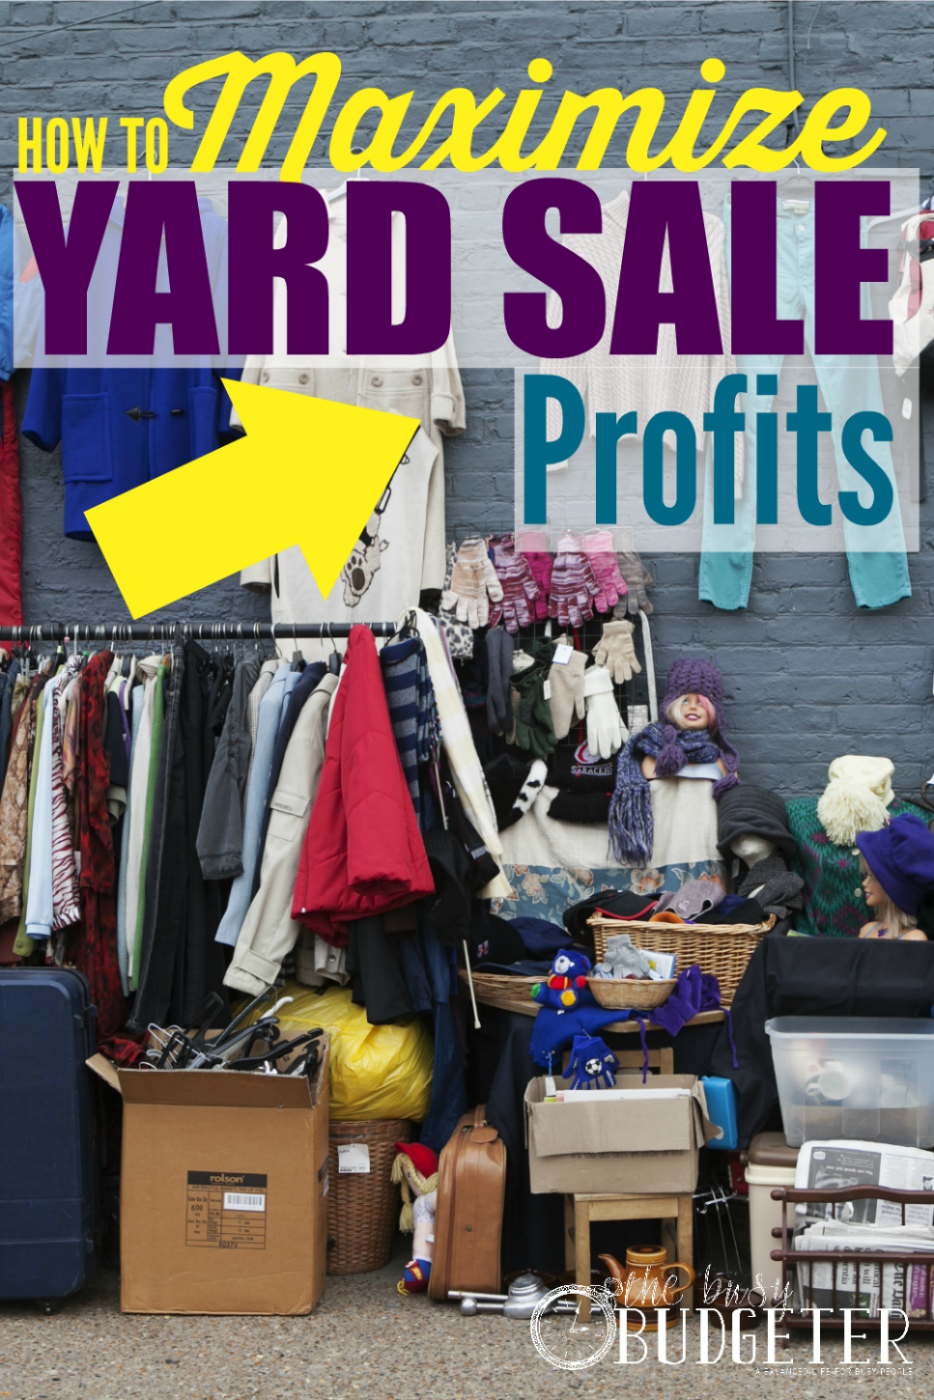 How to Maximize Yard Sale Profits. 😞 I wish i saw this last month. We did okay, and made $400 in 3 hours but I'm kicking myself as I read this because it makes so much sense! Why didn't I think of the craigslist trick?!